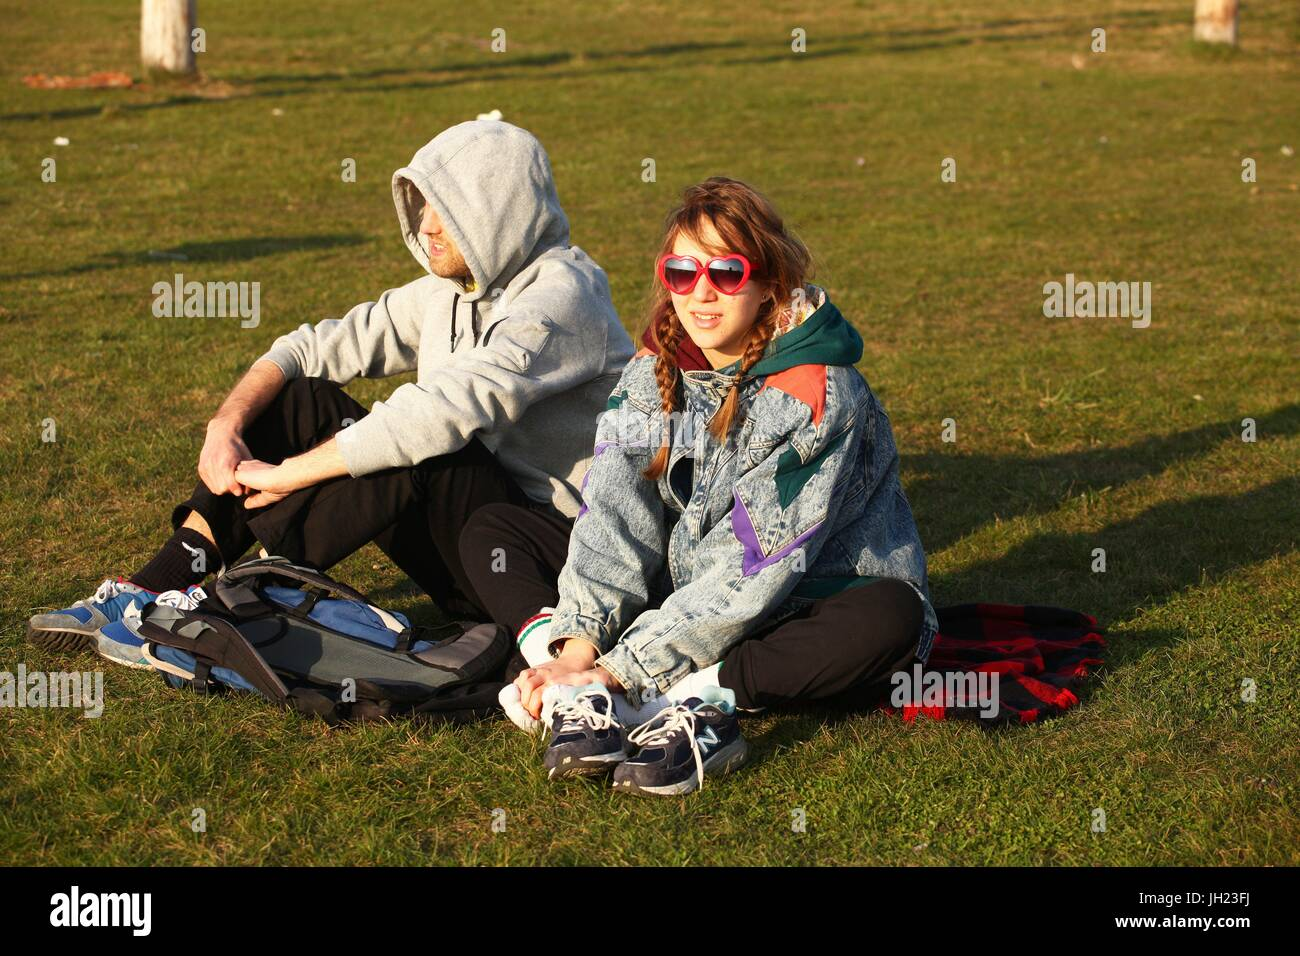 Two young German tourists are sitting on a lane at Tempelhofer Feld March 11, 2014. This picture is part of a series - Stock Image